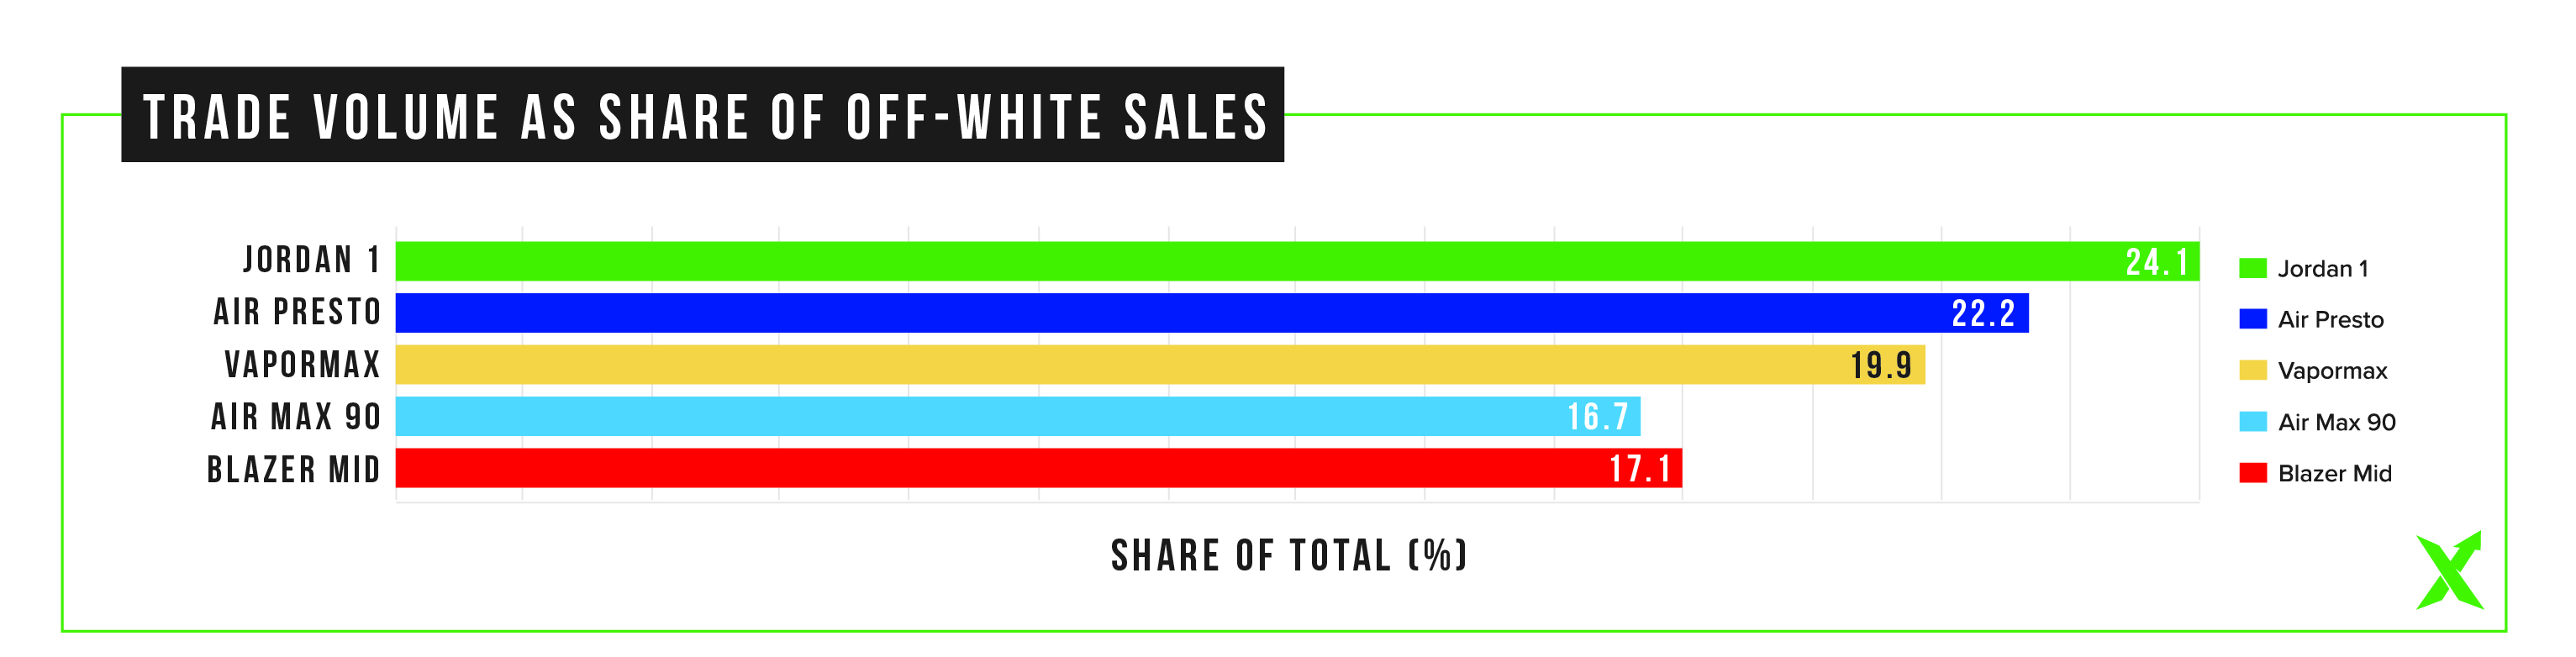 440df0da38c5 The first chart shows the average Off-White resale prices over the past two  weeks. The Jordan 1 leads the way